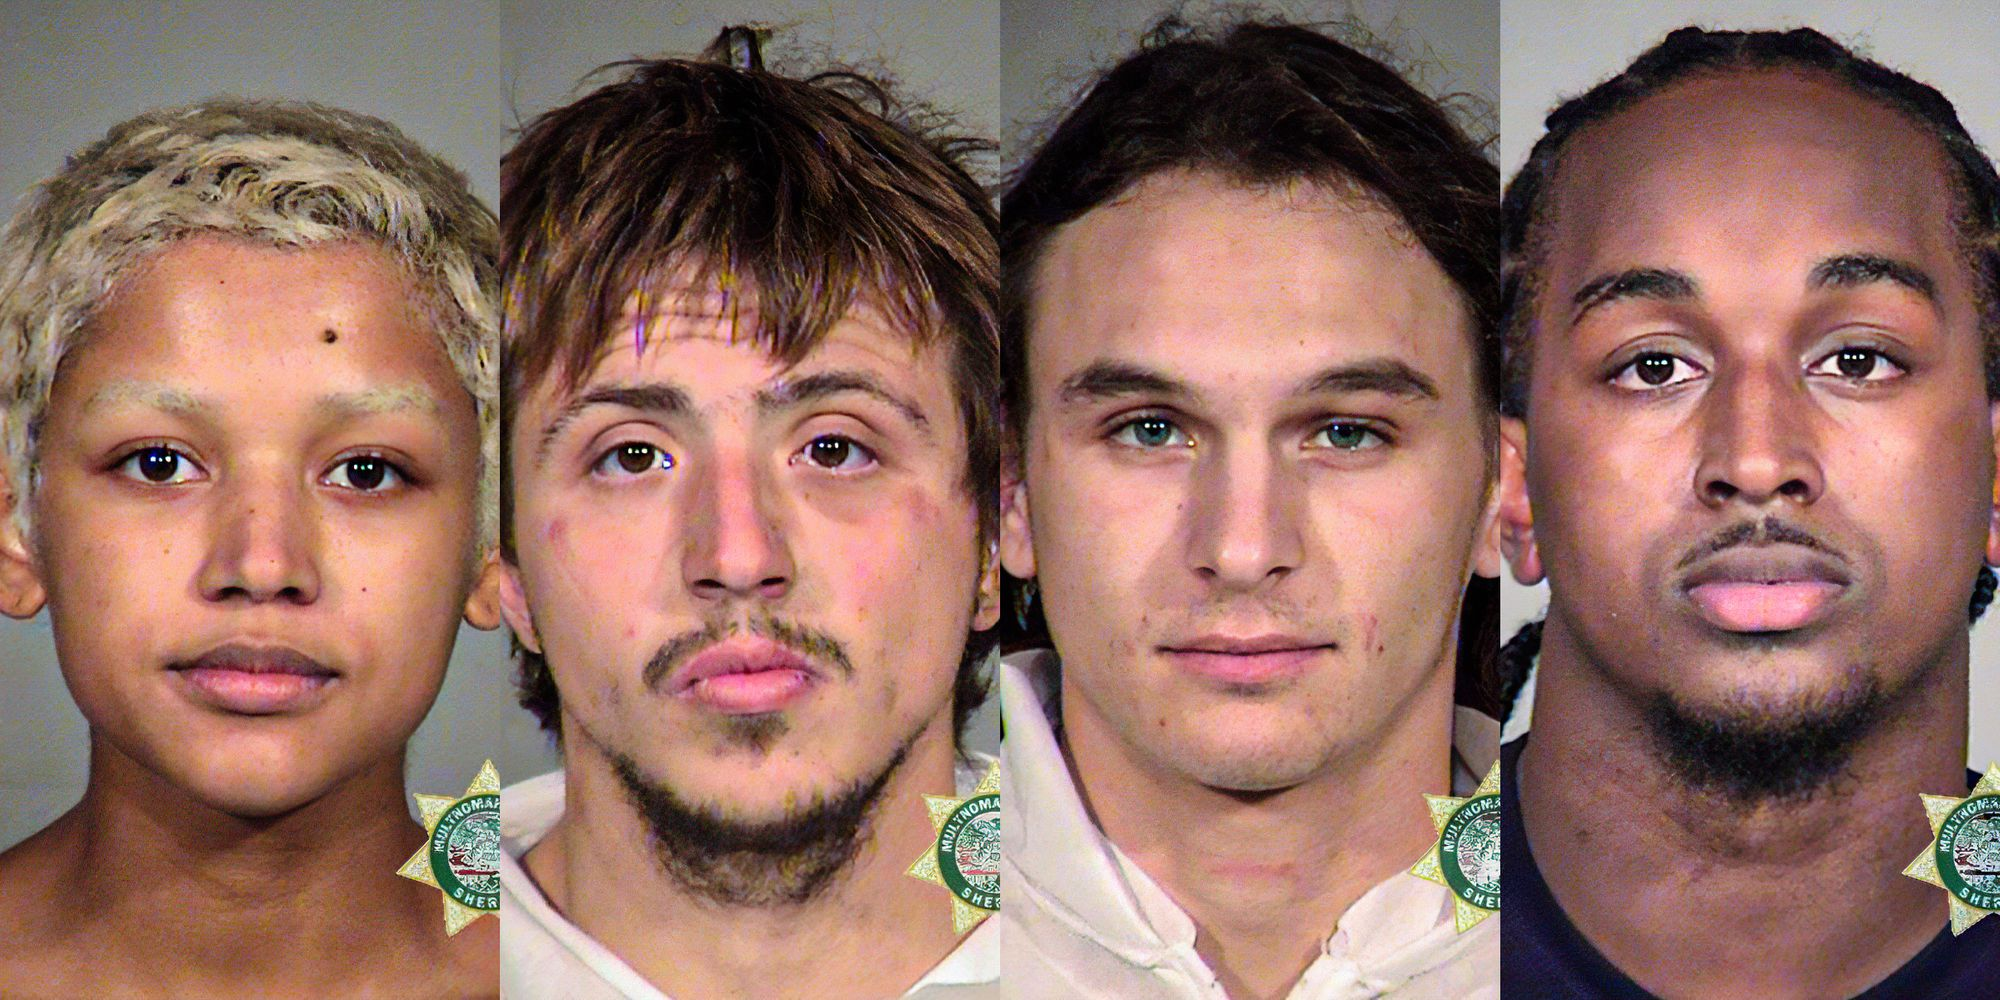 Portland district attorney brings charges following week of BLM-Antifa arson attacks